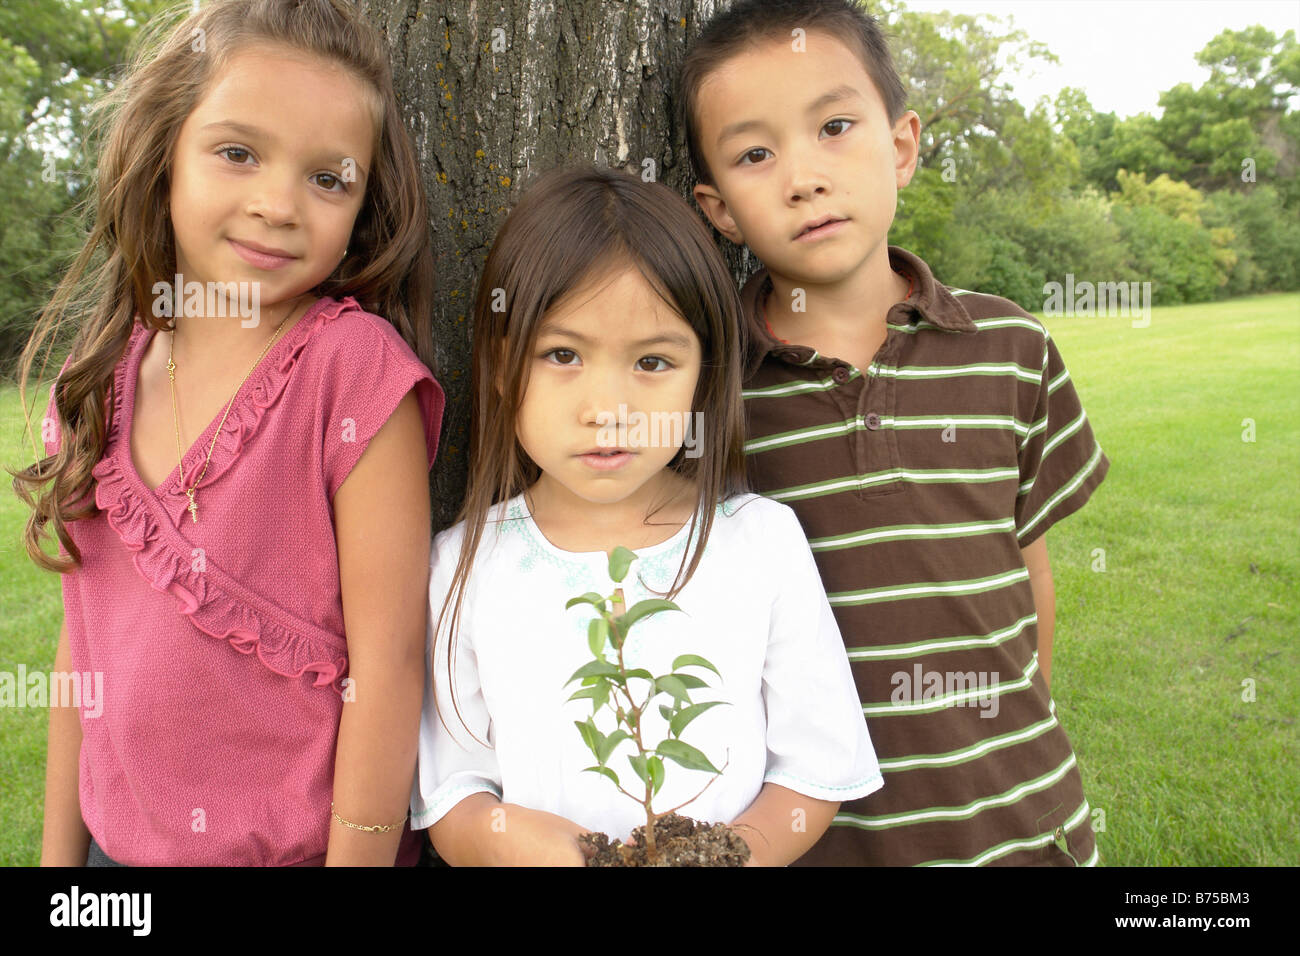 Five year old girl holds small tree, beside seven year old boy and girl, Winnipeg, Canada - Stock Image